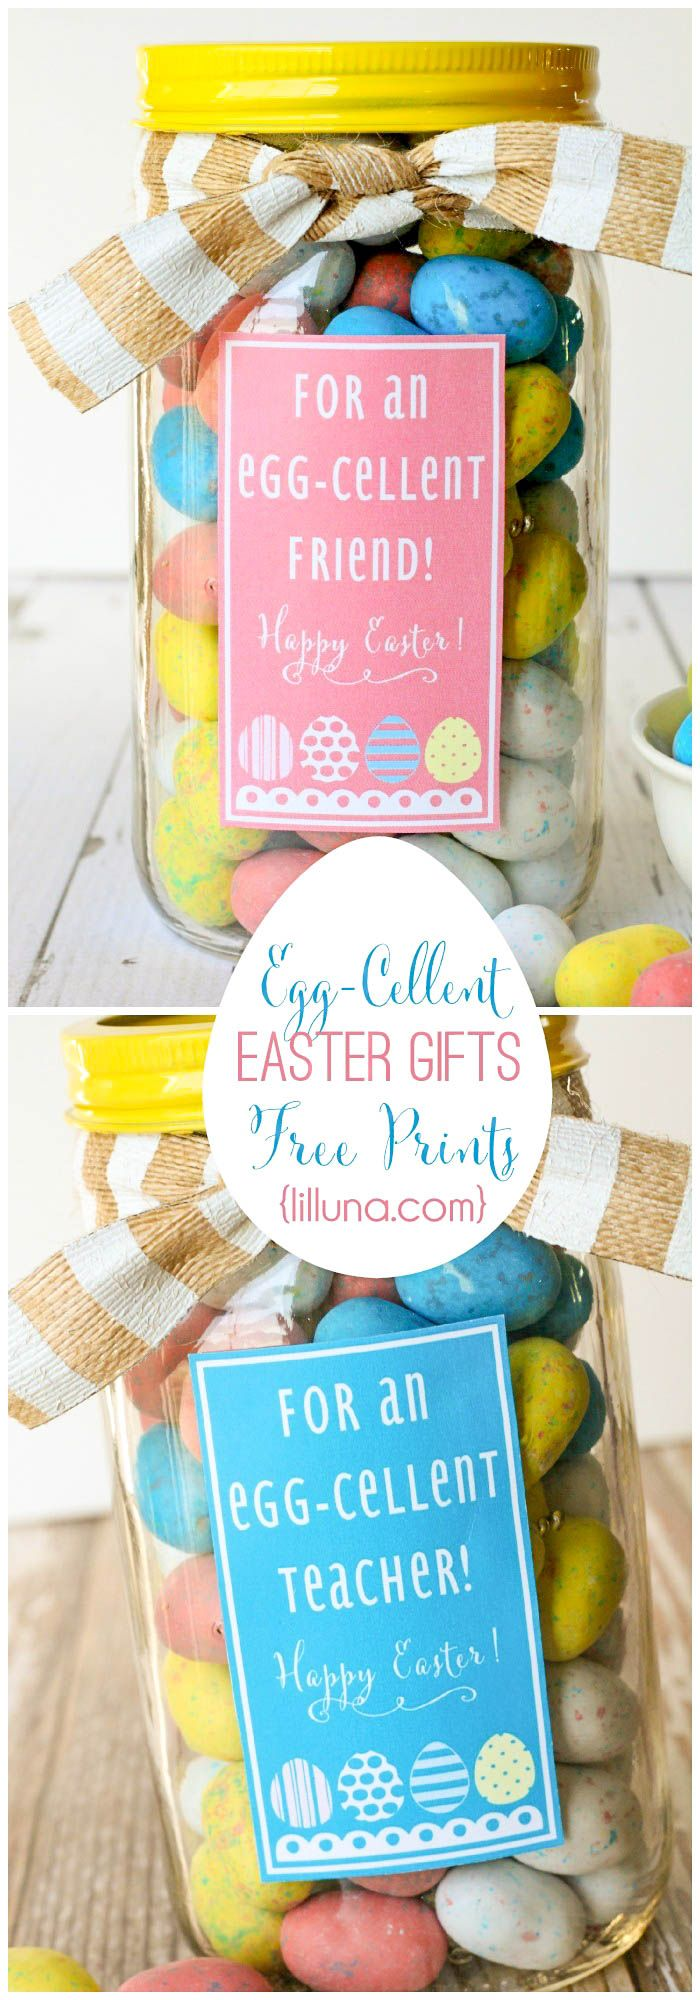 123 best secret sister ideas images on pinterest gift ideas build egg cellent easter gift ideas cute and inexpensive lilluna negle Image collections